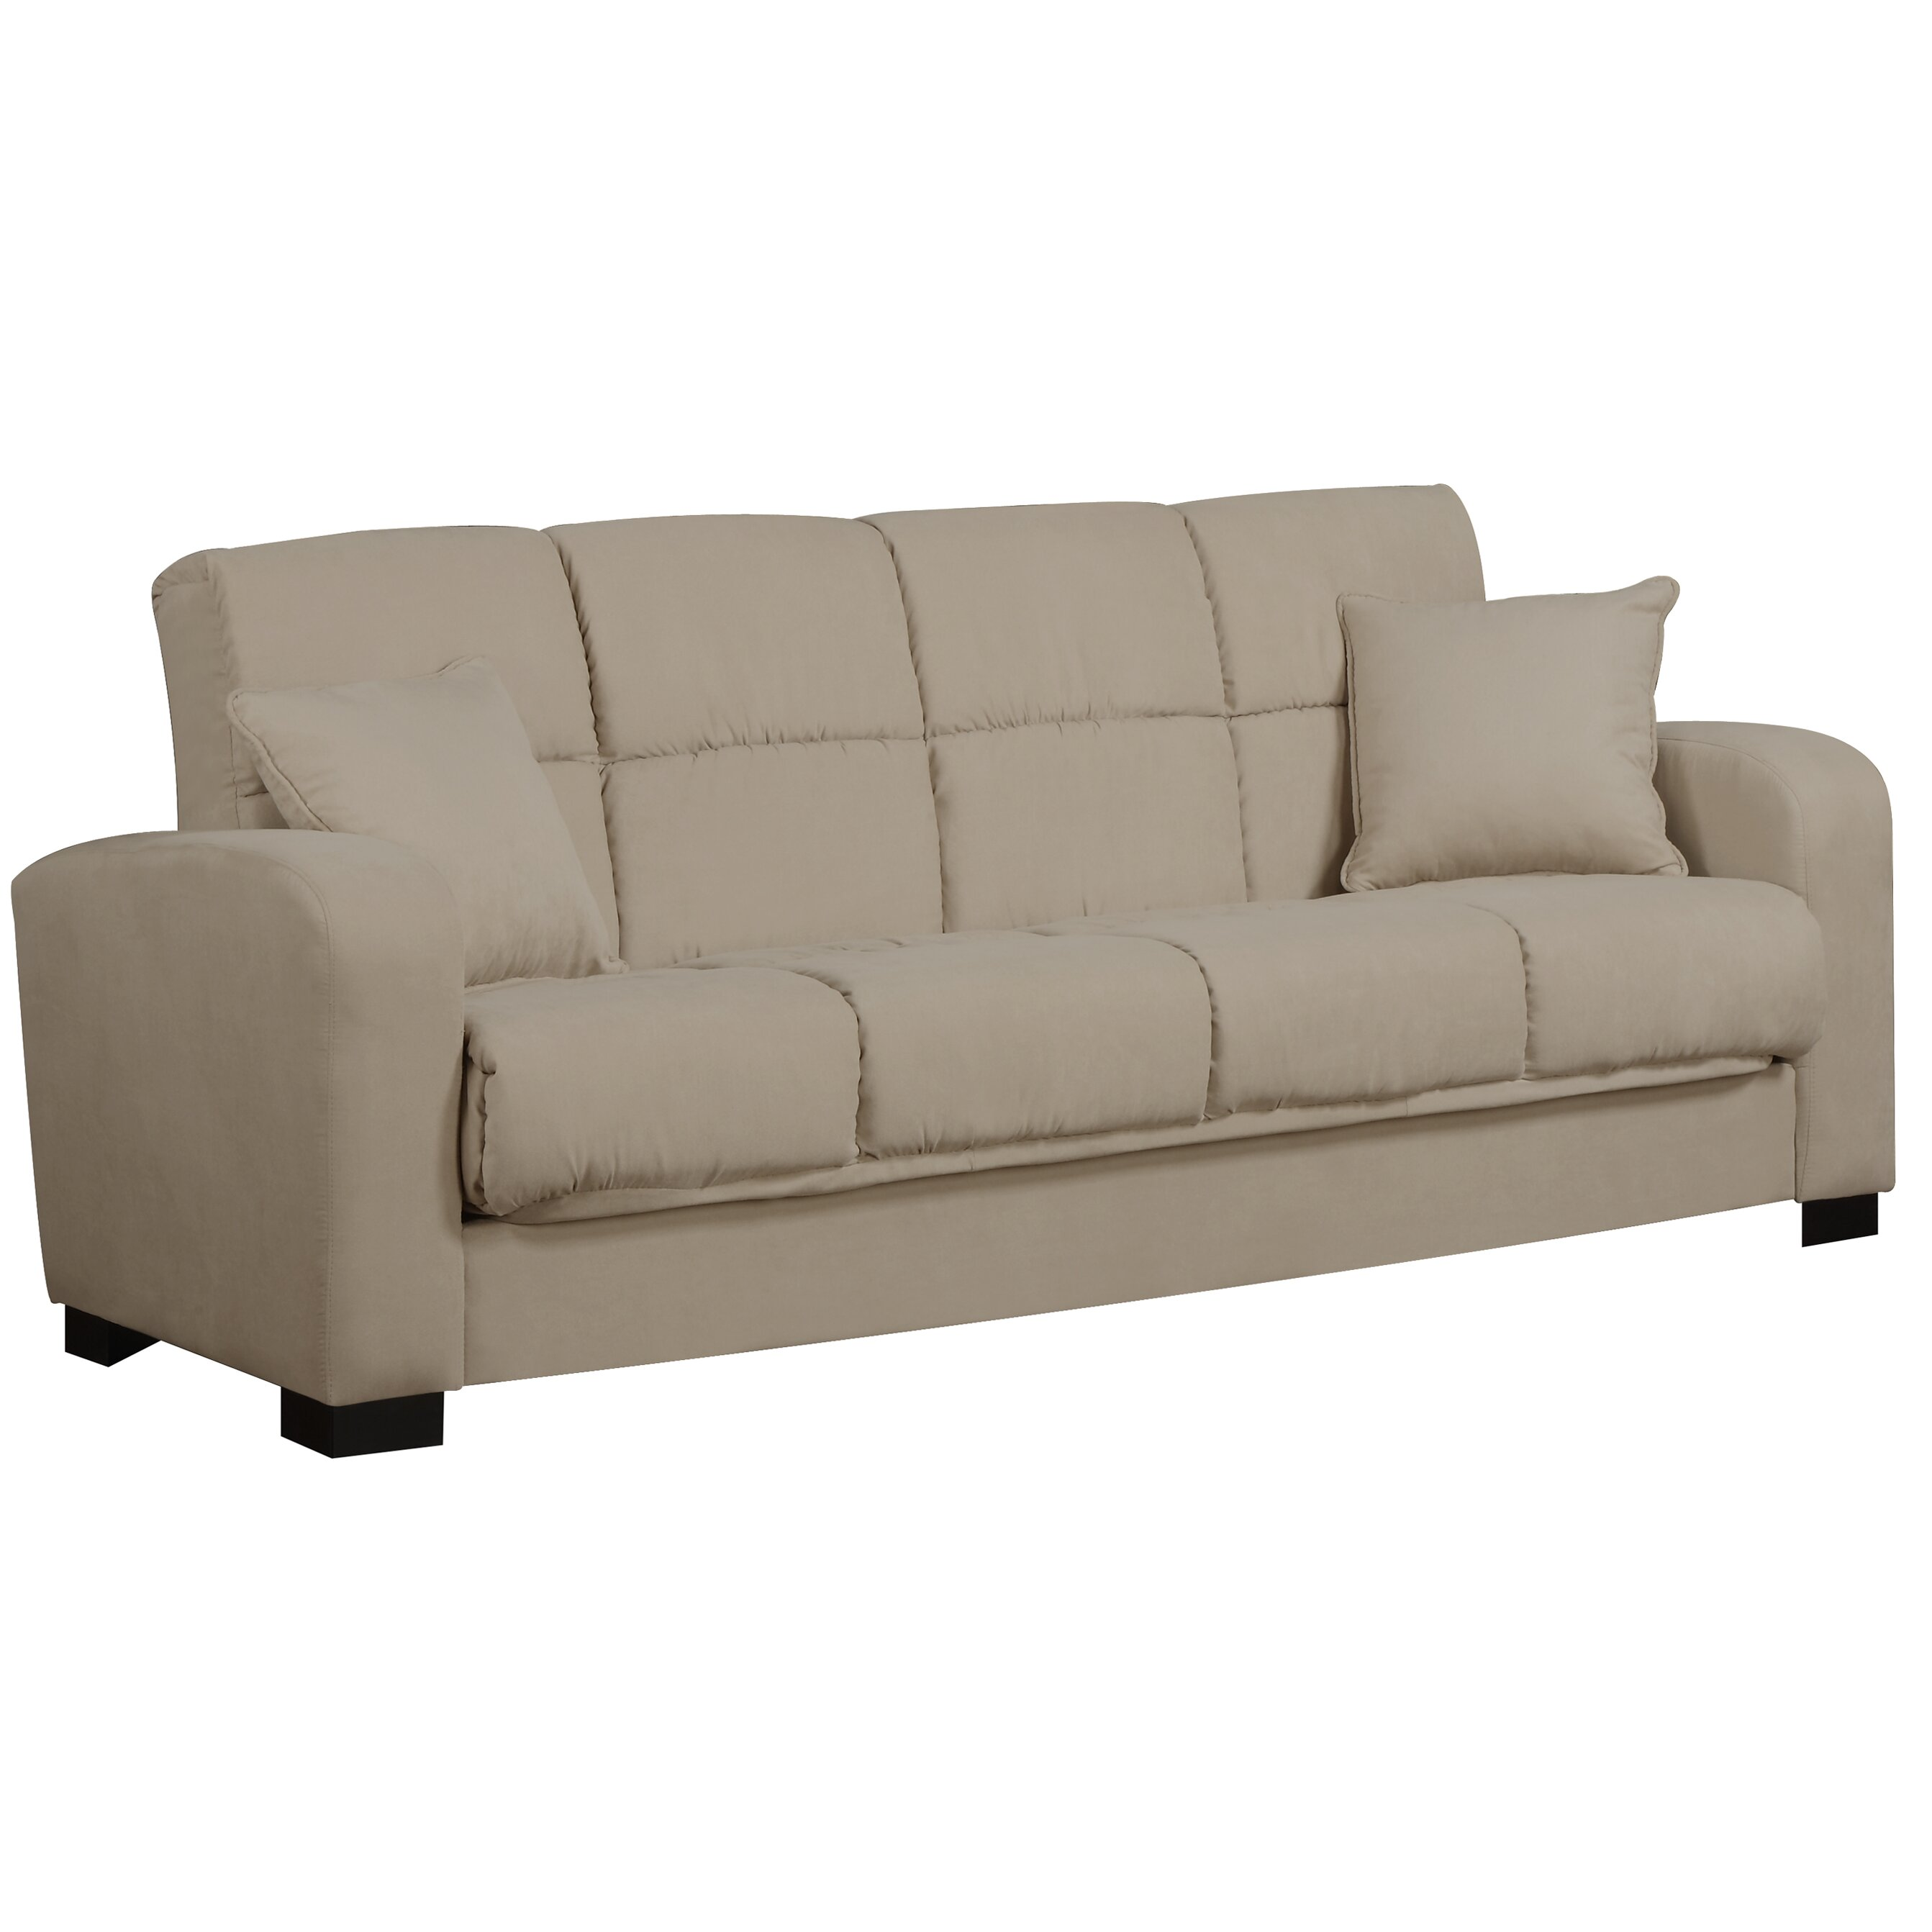 Andover Mills Richardson Full Convertible Sleeper Sofa Reviews Wayfair